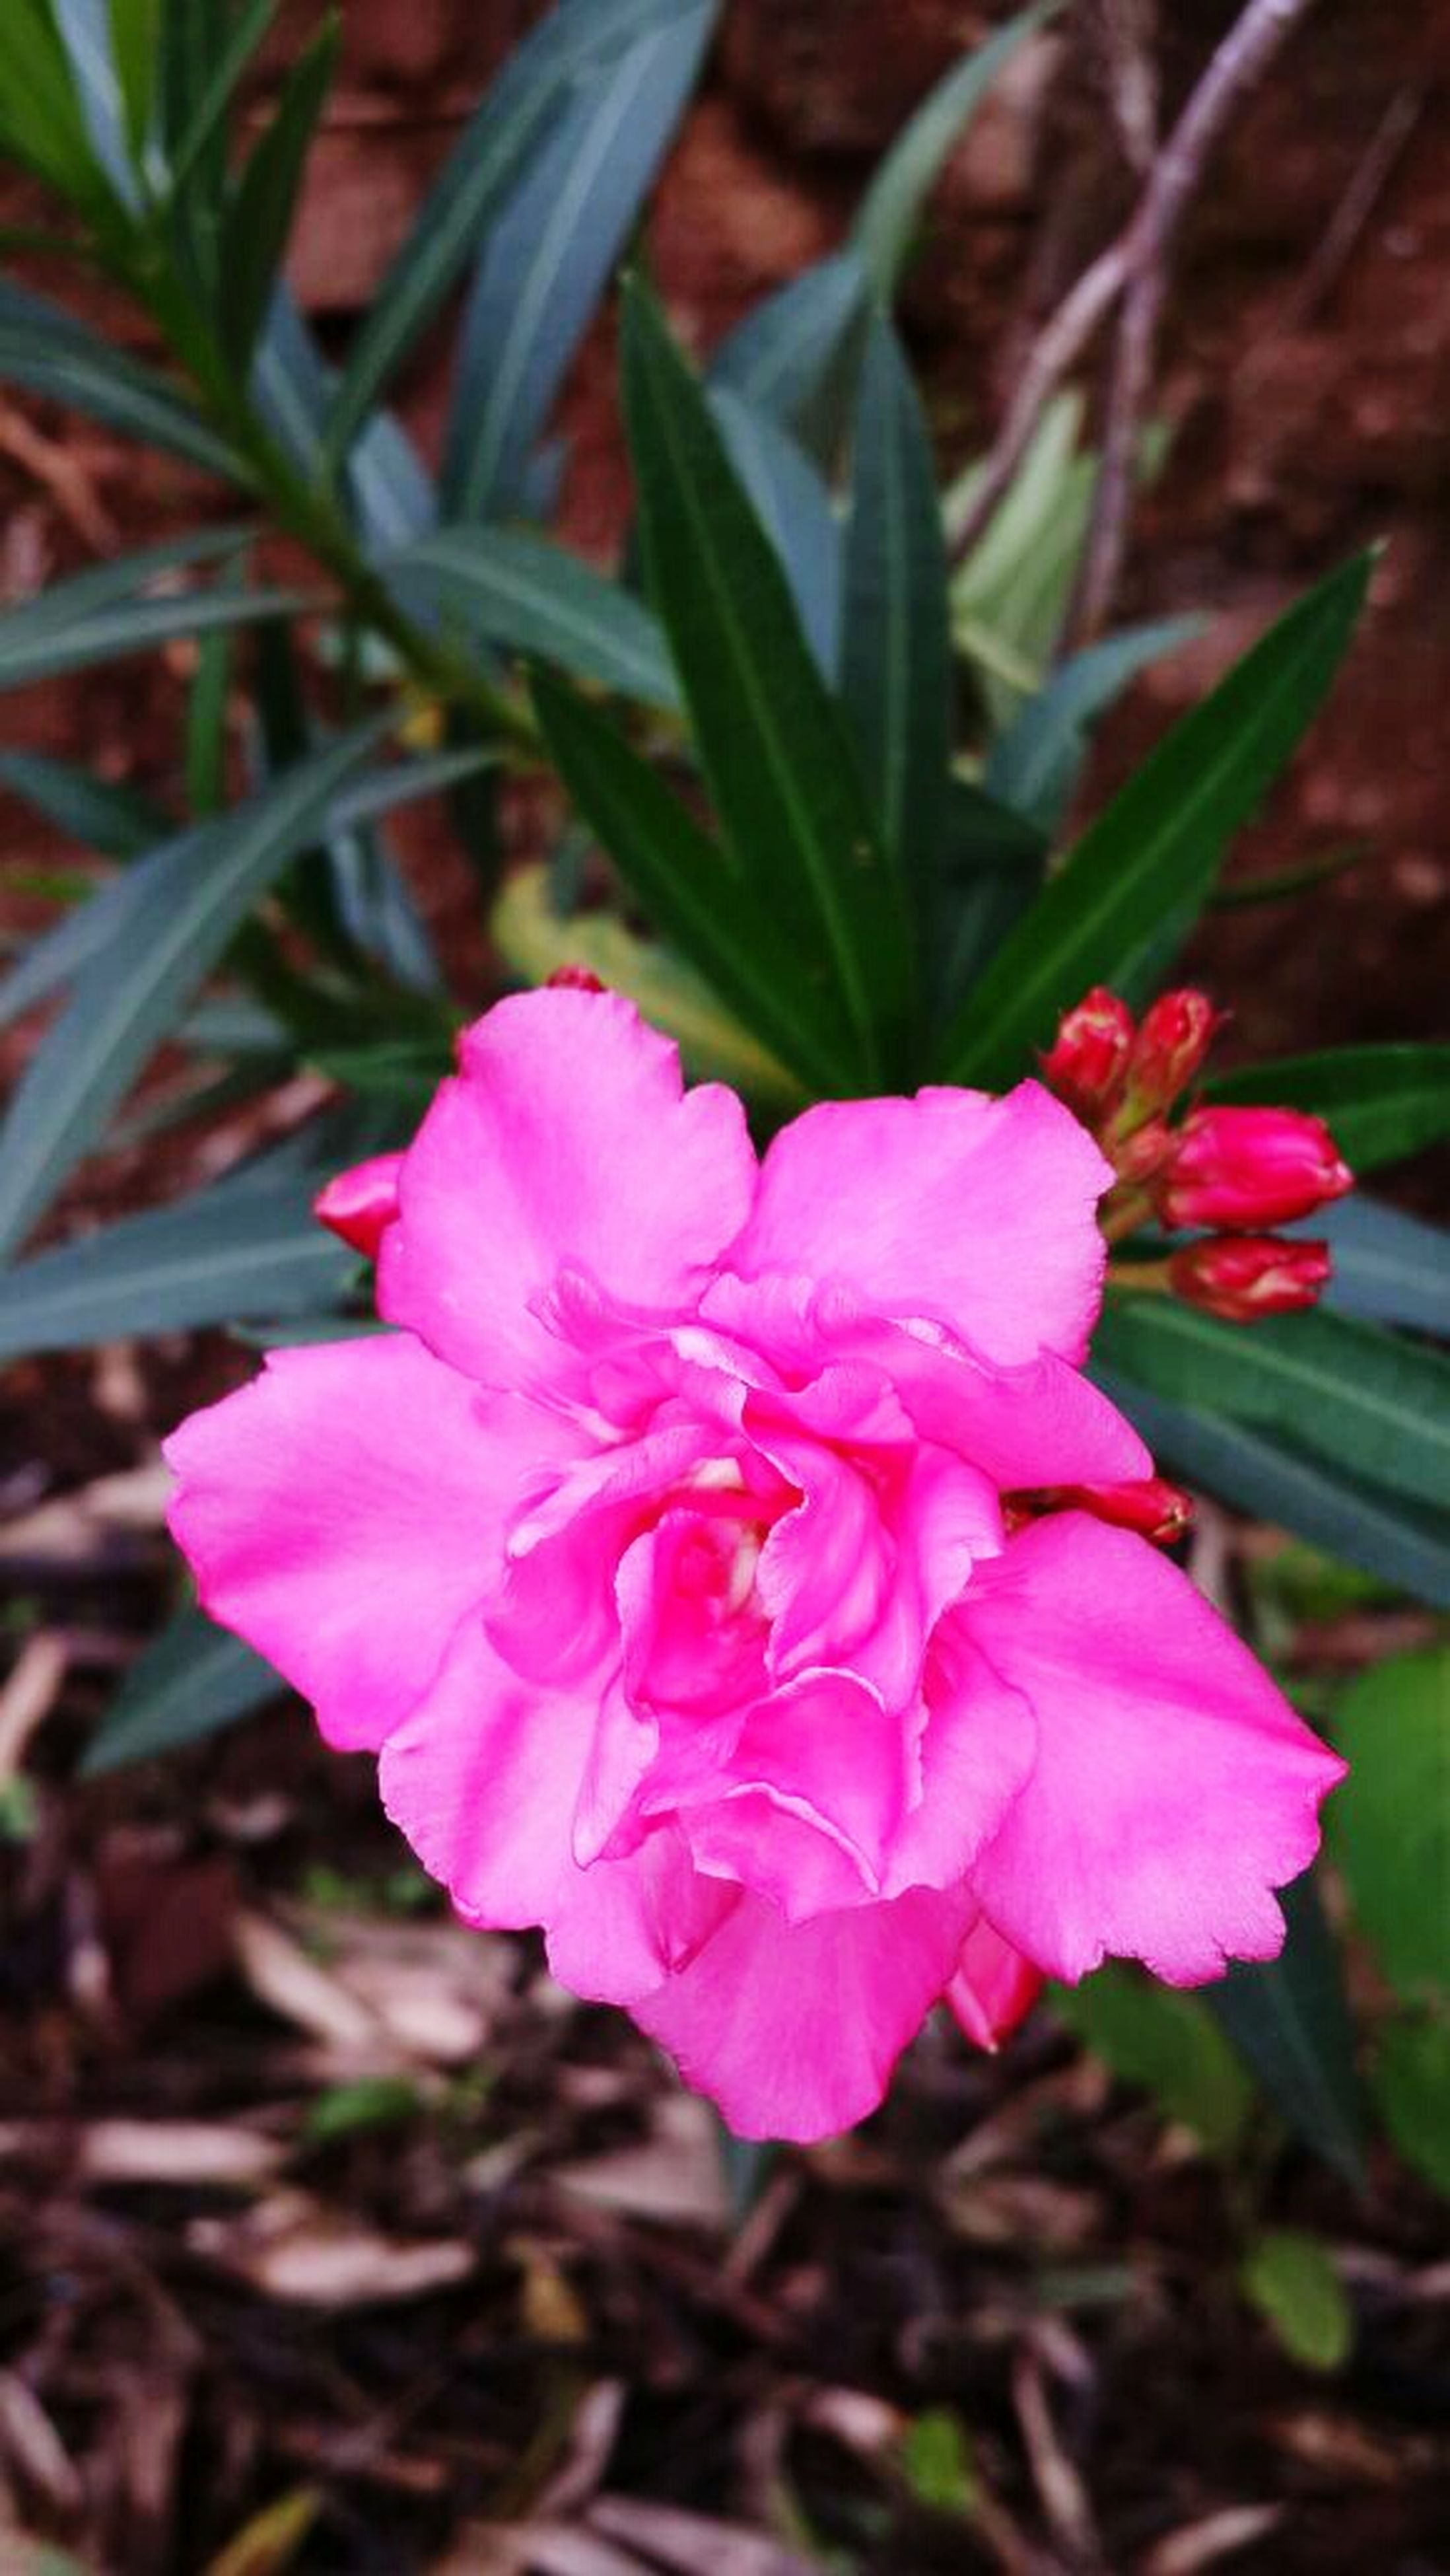 flower, pink color, petal, fragility, freshness, flower head, close-up, growth, beauty in nature, focus on foreground, pink, blooming, nature, plant, single flower, in bloom, high angle view, outdoors, day, no people